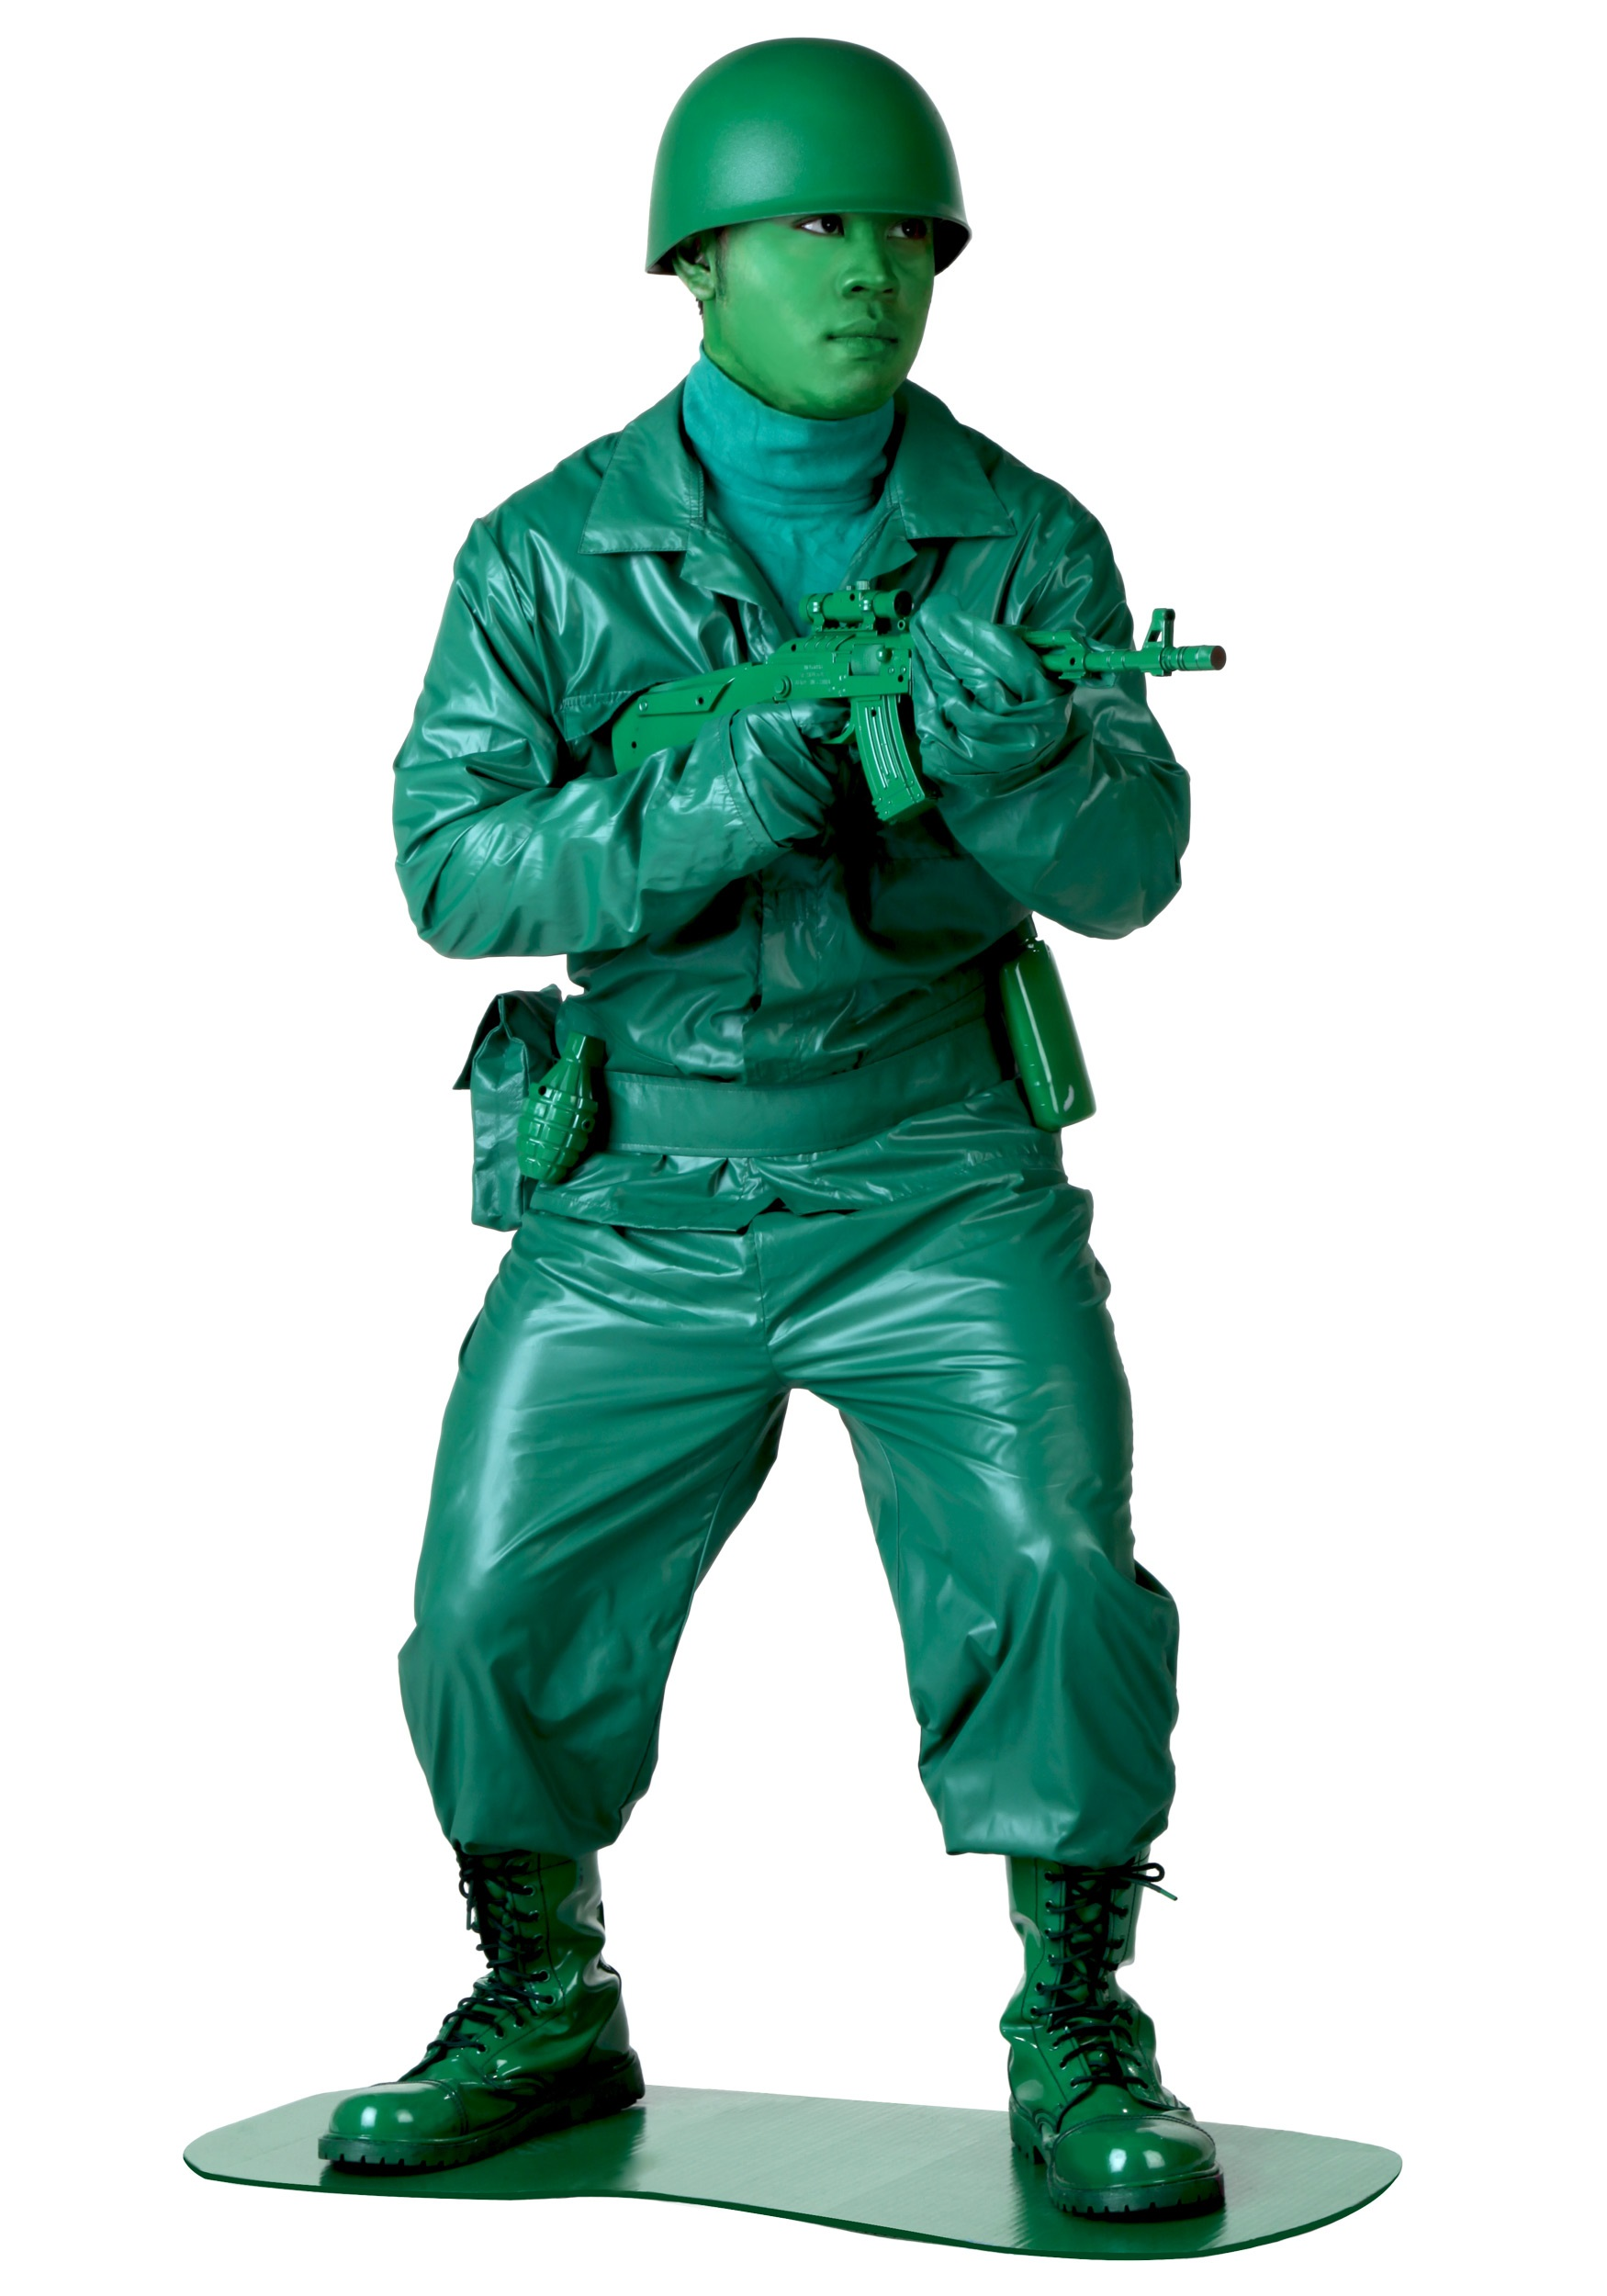 INOpets.com Anything for Pets Parents & Their Pets Green Army Man Costume